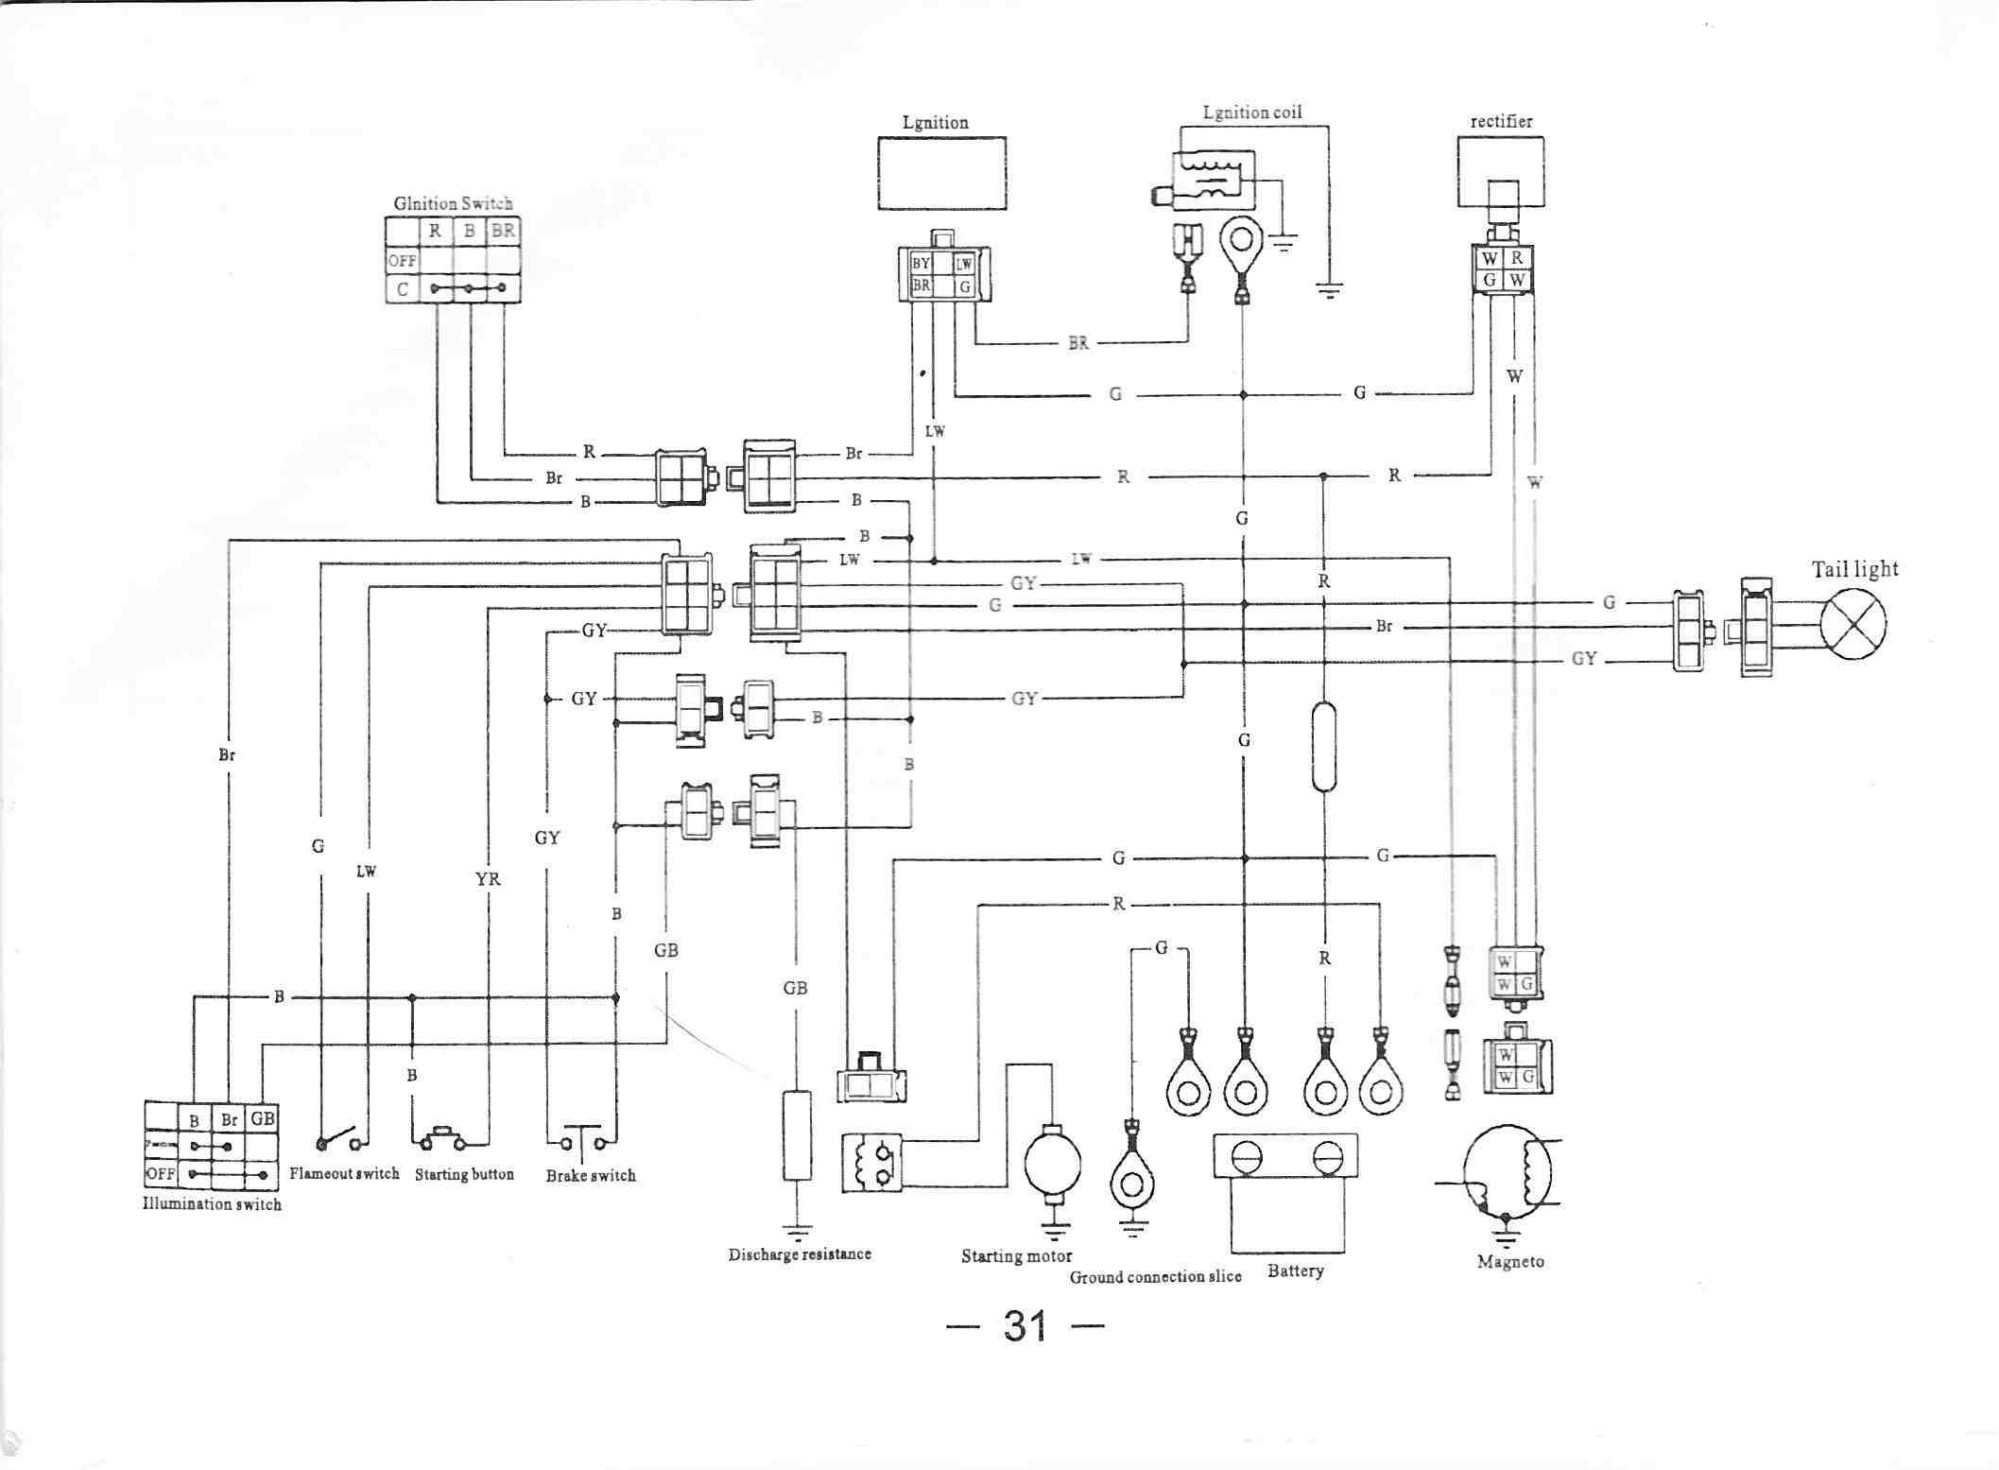 hight resolution of arctic cat atv 50 wiring diagram wiring diagram expertatv 50 wiring diagram wiring diagram name arctic